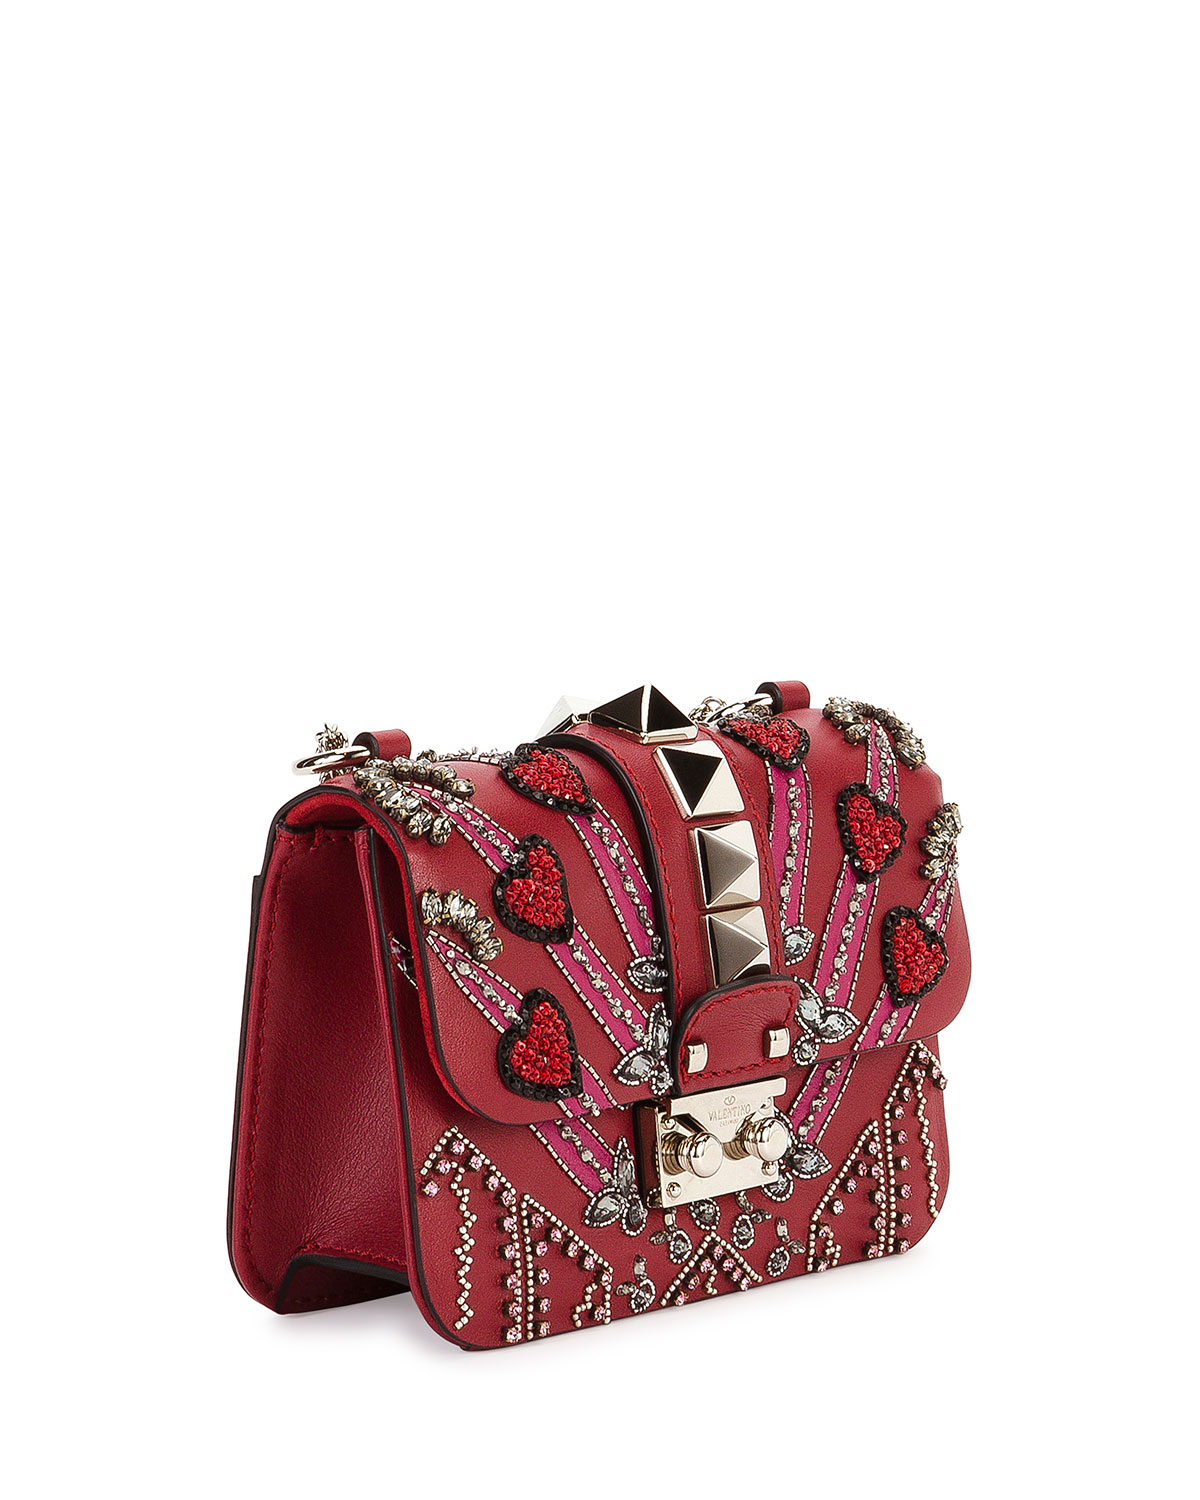 7b6c2c57a97 Valentino Garavani Lock Mini Love Blade Shoulder Bag, Red | Neiman Marcus